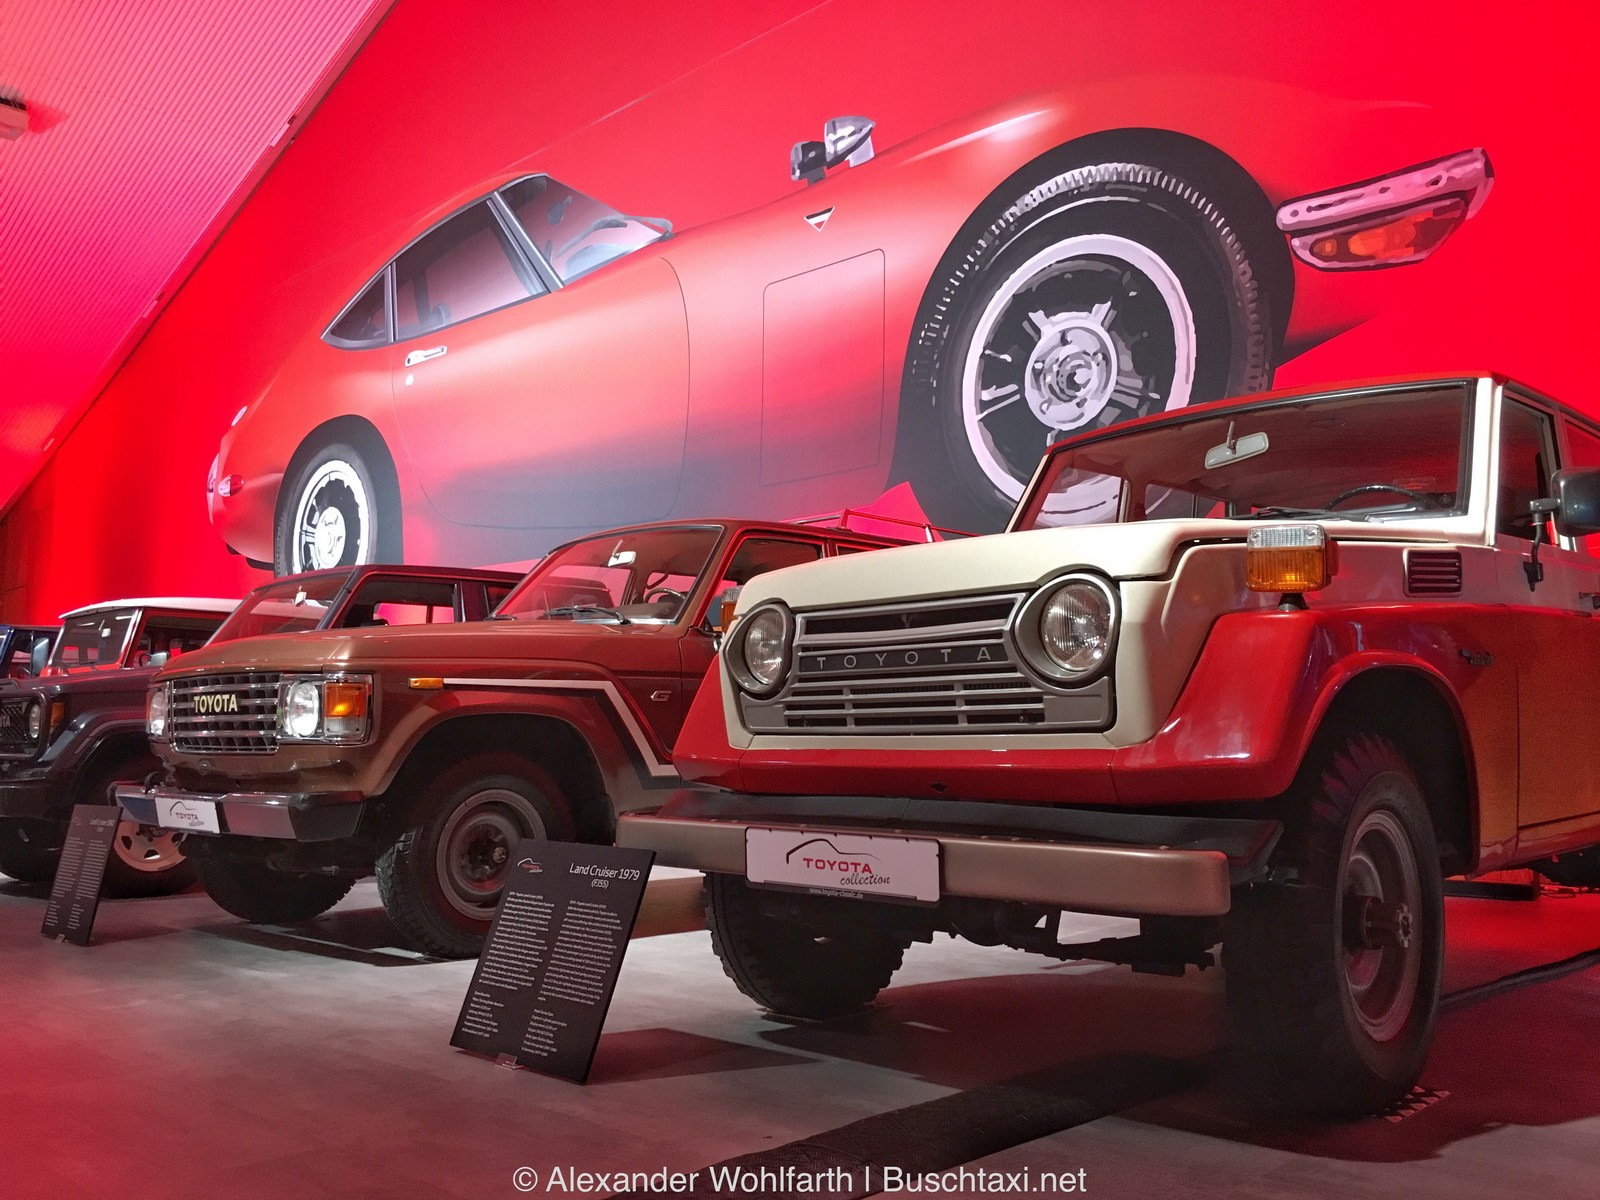 2017-11-23 toyota collection 03